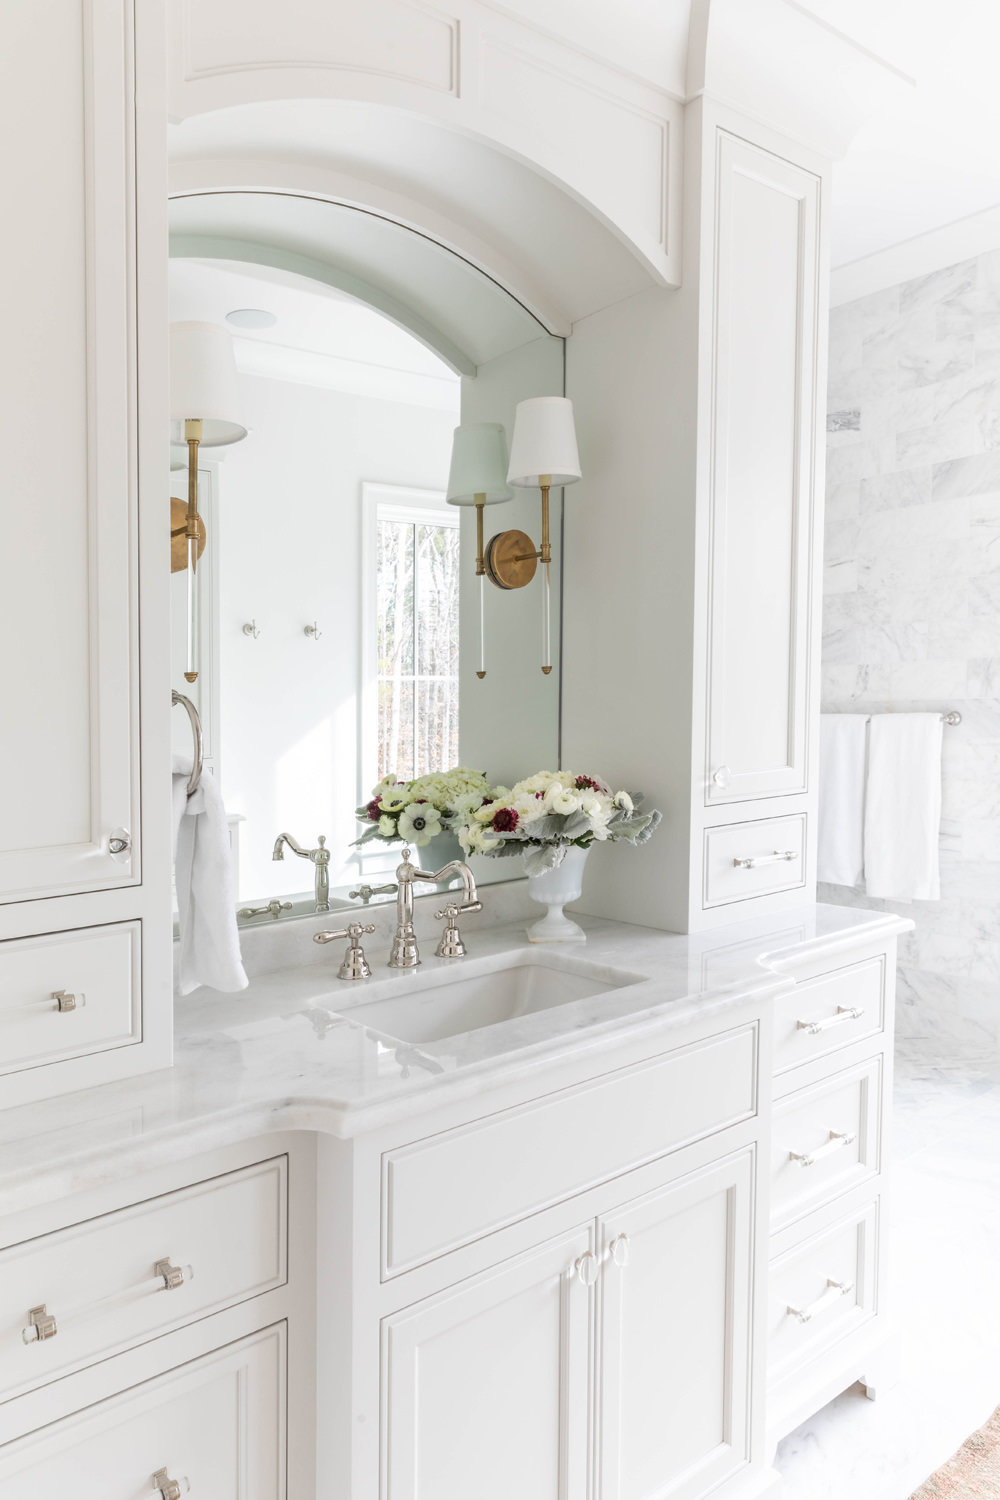 White-Carrara-Marble-Master-Bathroom-with-Soaking-Tub-6